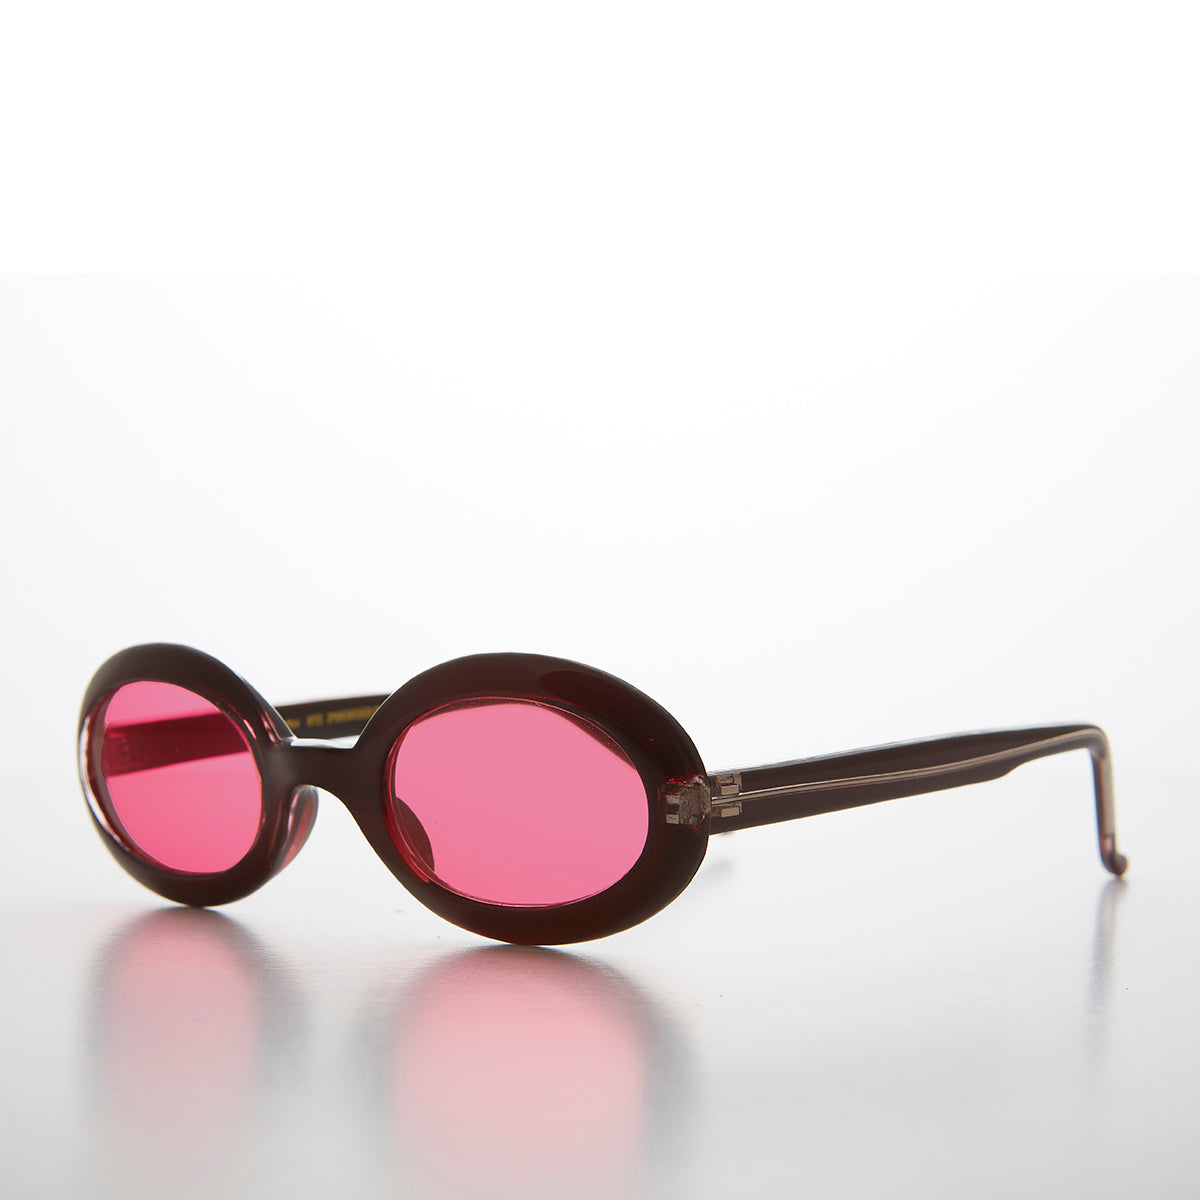 Small Junior Adult Oval 90s Sunglass Frames with Colored Lenses